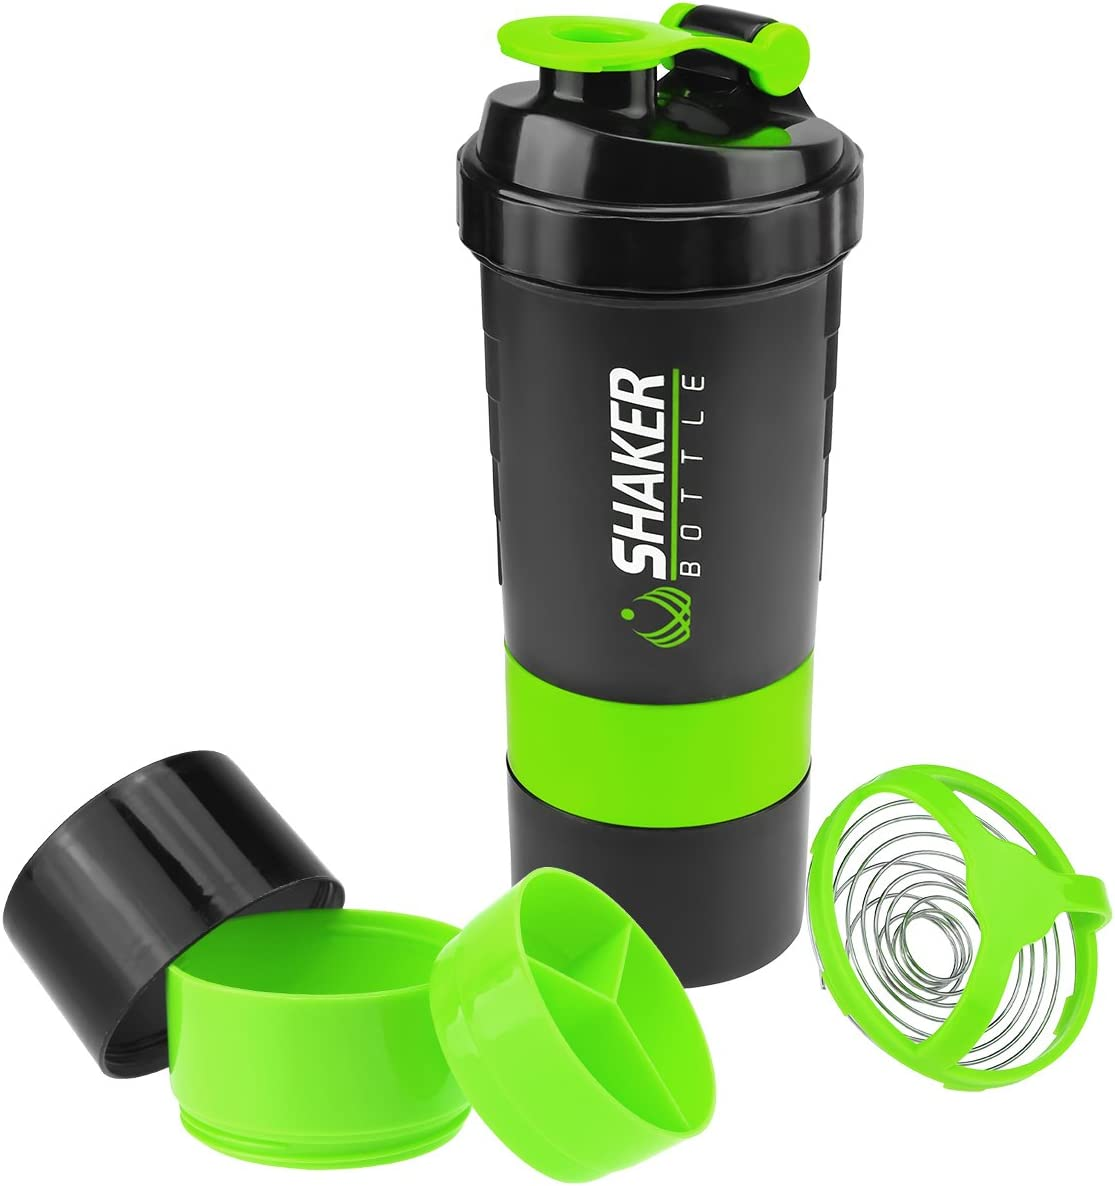 VIGIND Protein Shaker Bottle - Sports Water Bottle - Non Slip 3 Layer Twist Off 3oz Cups with Pill Tray - Leak Proof Shake Bottle Mixer- Protein Powder 16 oz Shake Cup with Storage